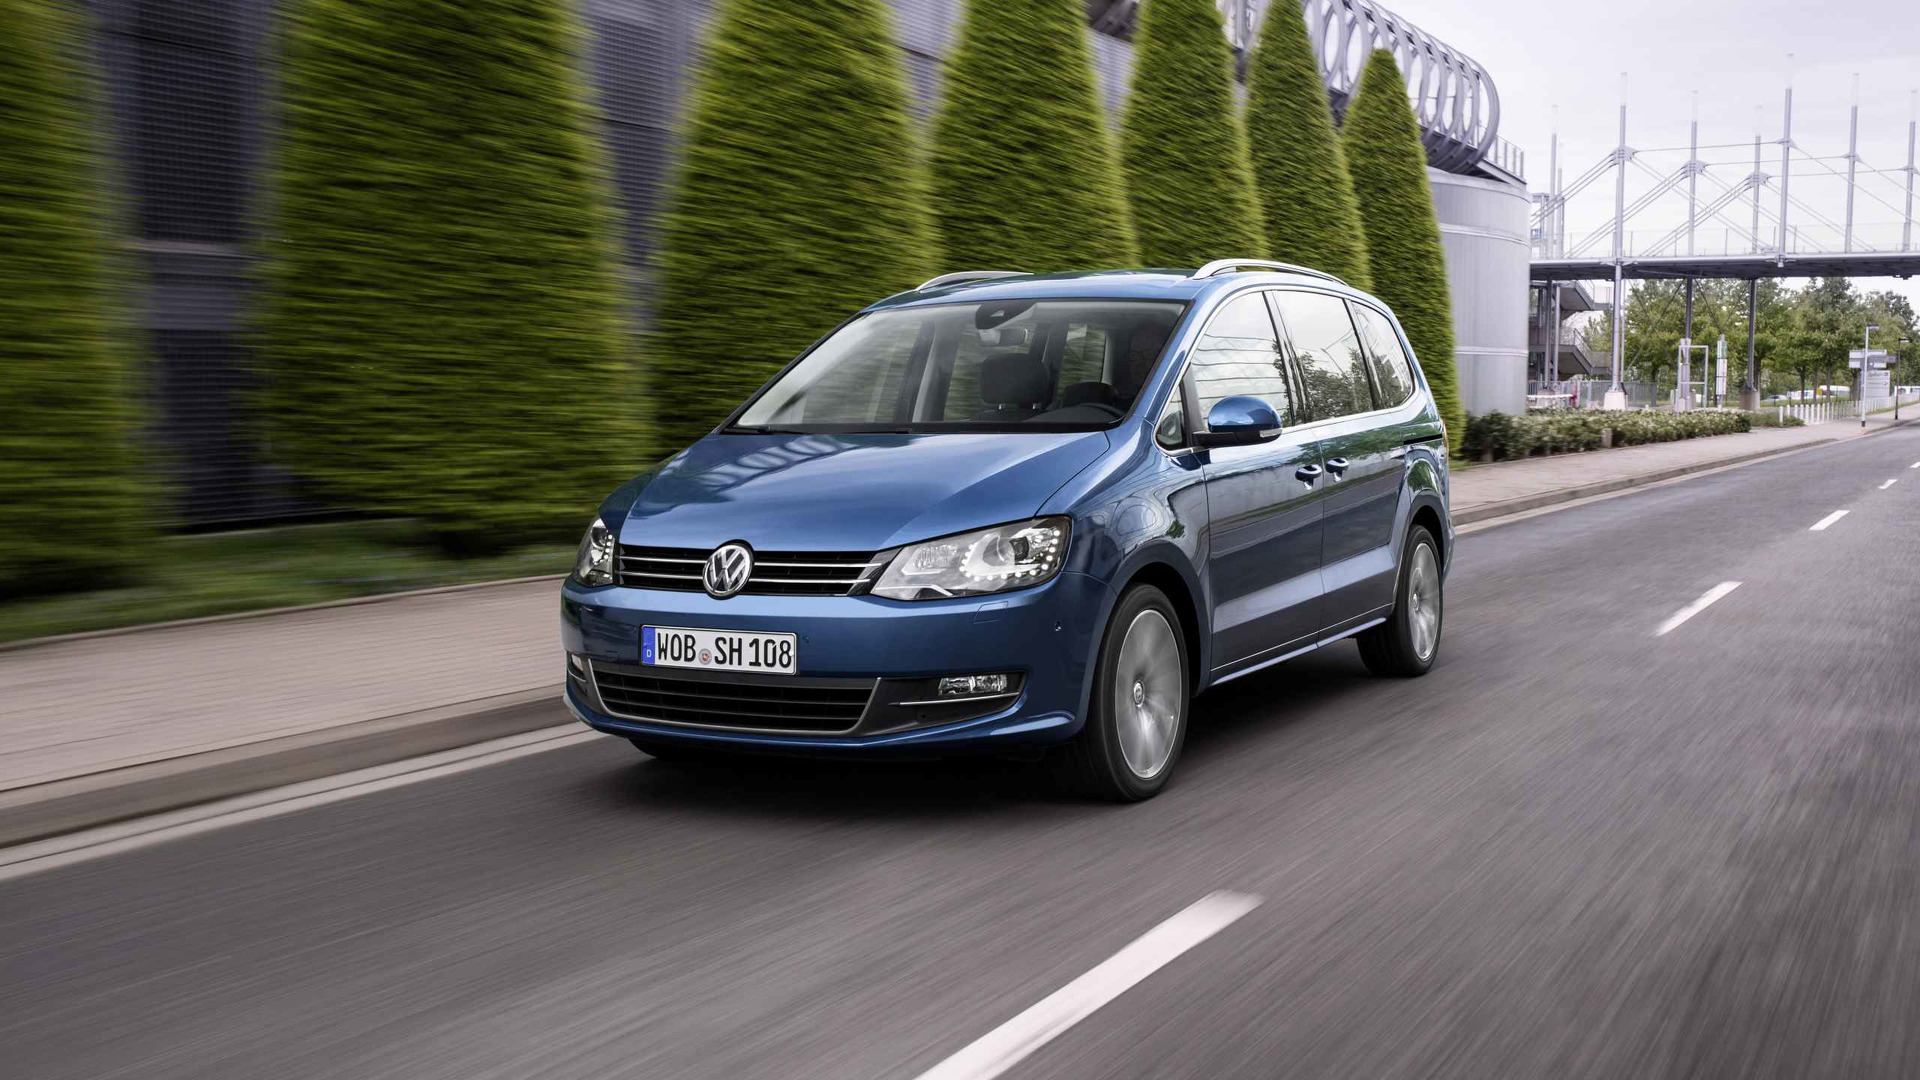 Volkswagen Sharan, reviews and features